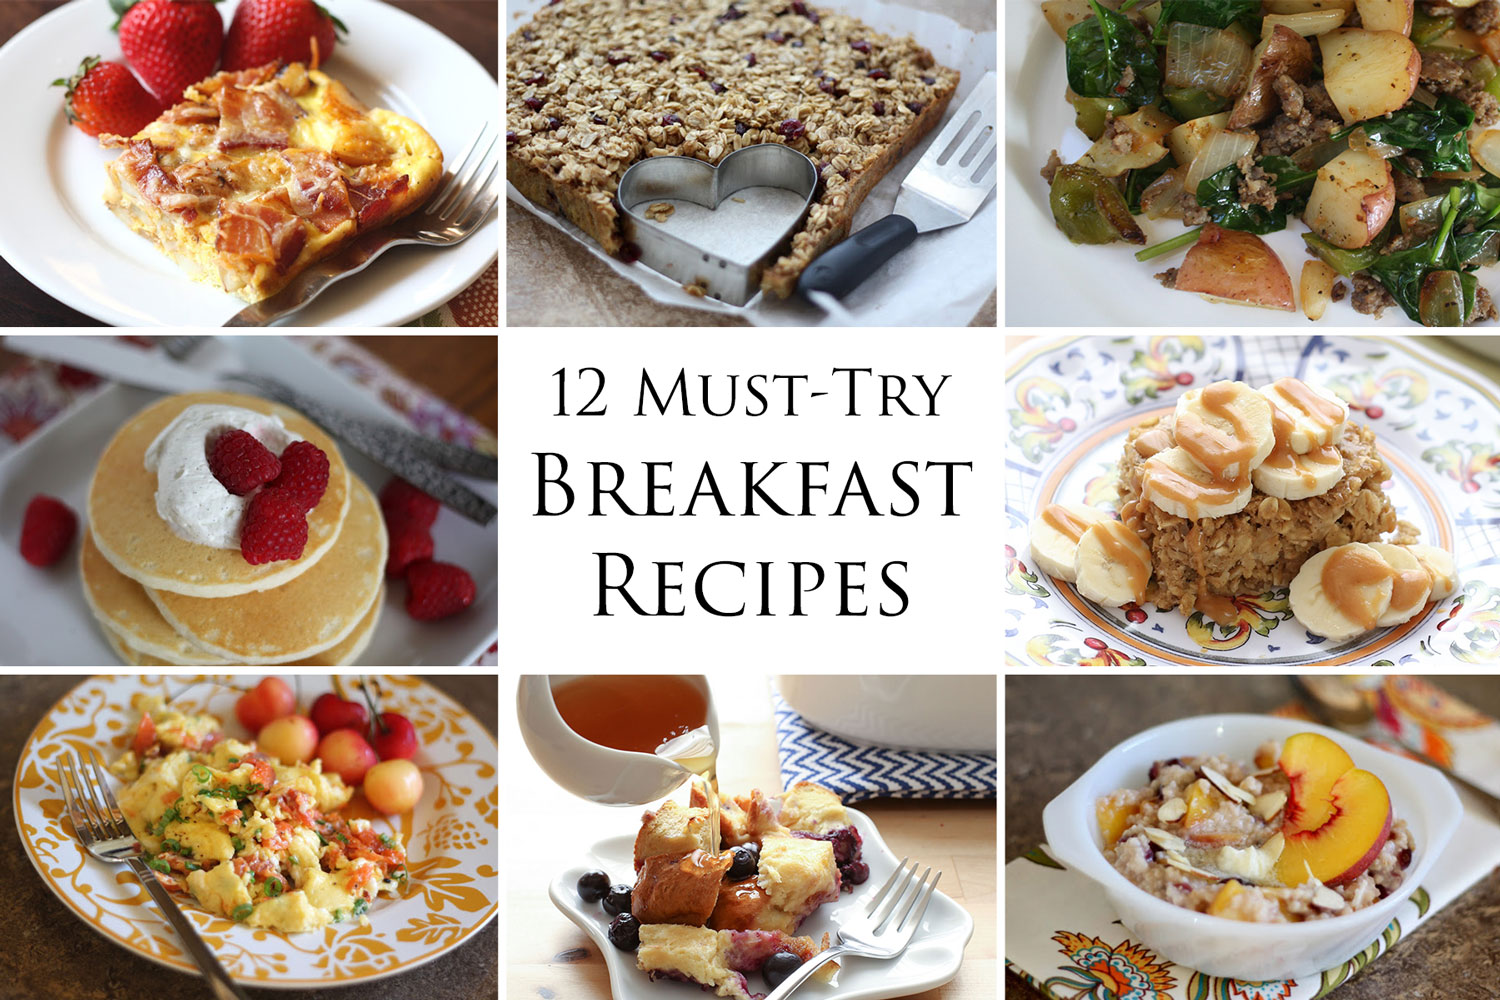 12 Must-Try Breakfast Recipes by Barefeet In The Kitchen